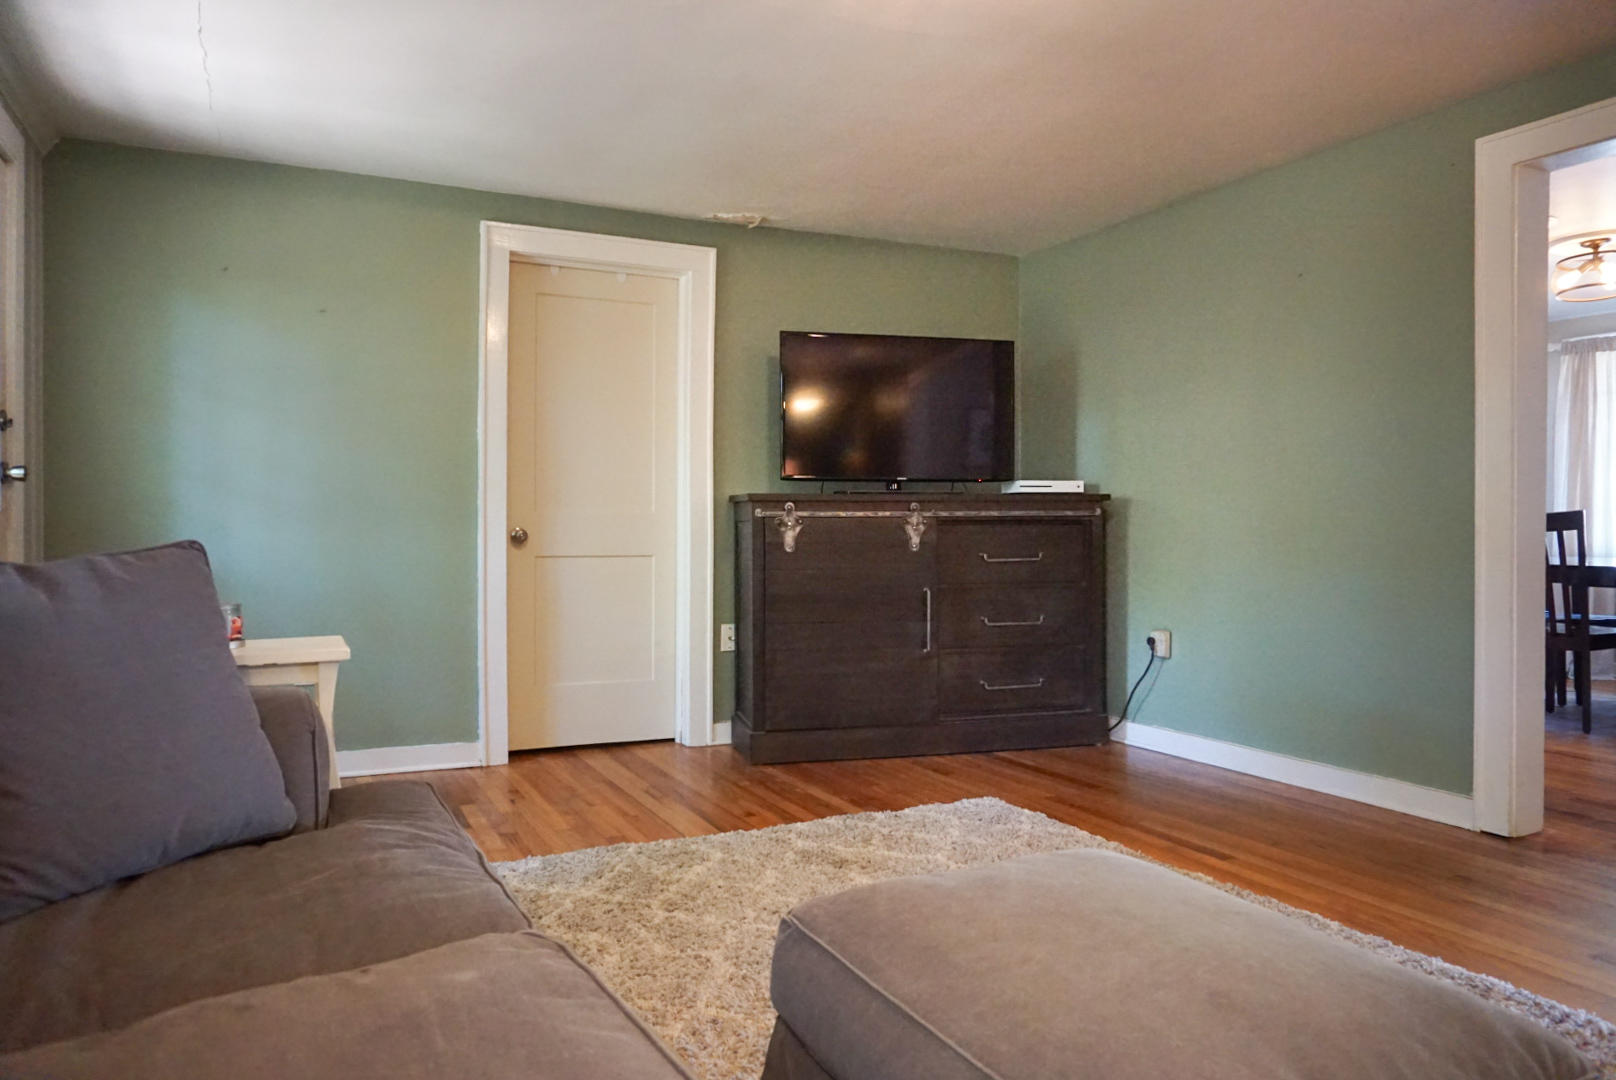 Old Mt Pleasant Homes For Sale - 610 King, Mount Pleasant, SC - 2